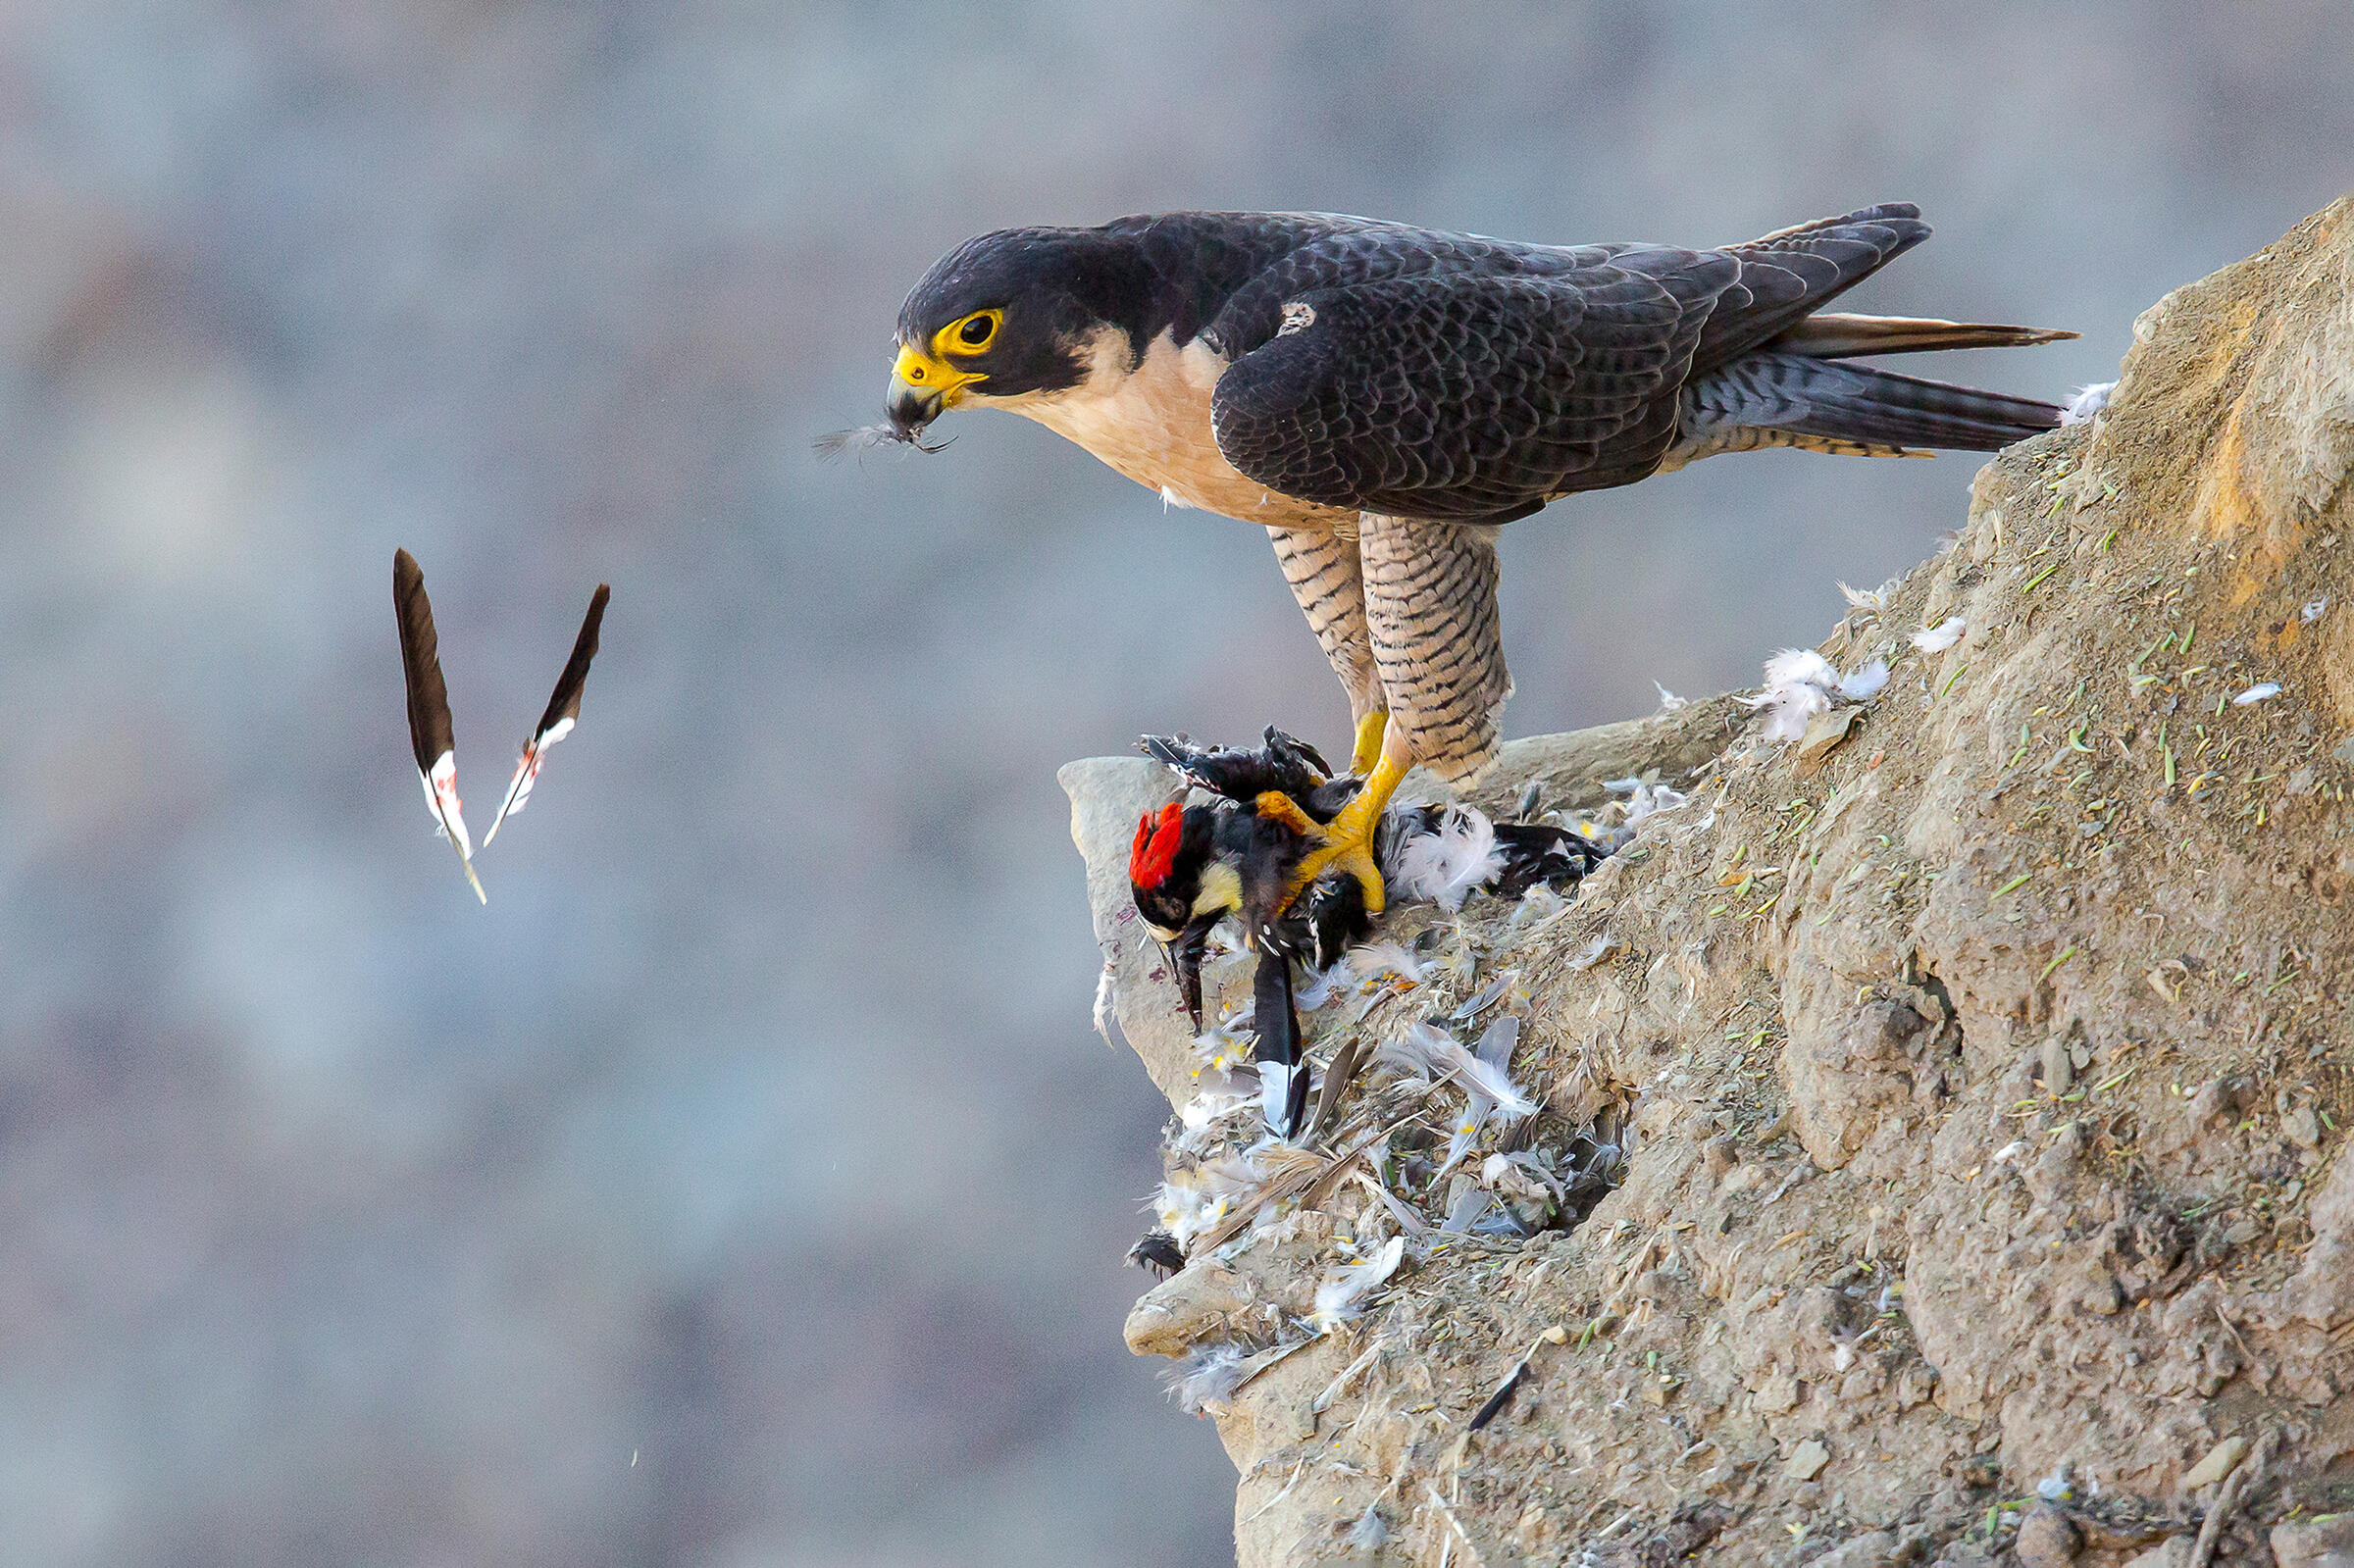 Atop a rocky cliff littered with feathers, a Peregrine Falcon stands with a red-crested Acorn Woodpecker in its bloodied talons. The tan and dark gray Falcon holds a feather in its beak as two other feathers, black at the top and white with blood stains at the bottom, float, crossing in midair.